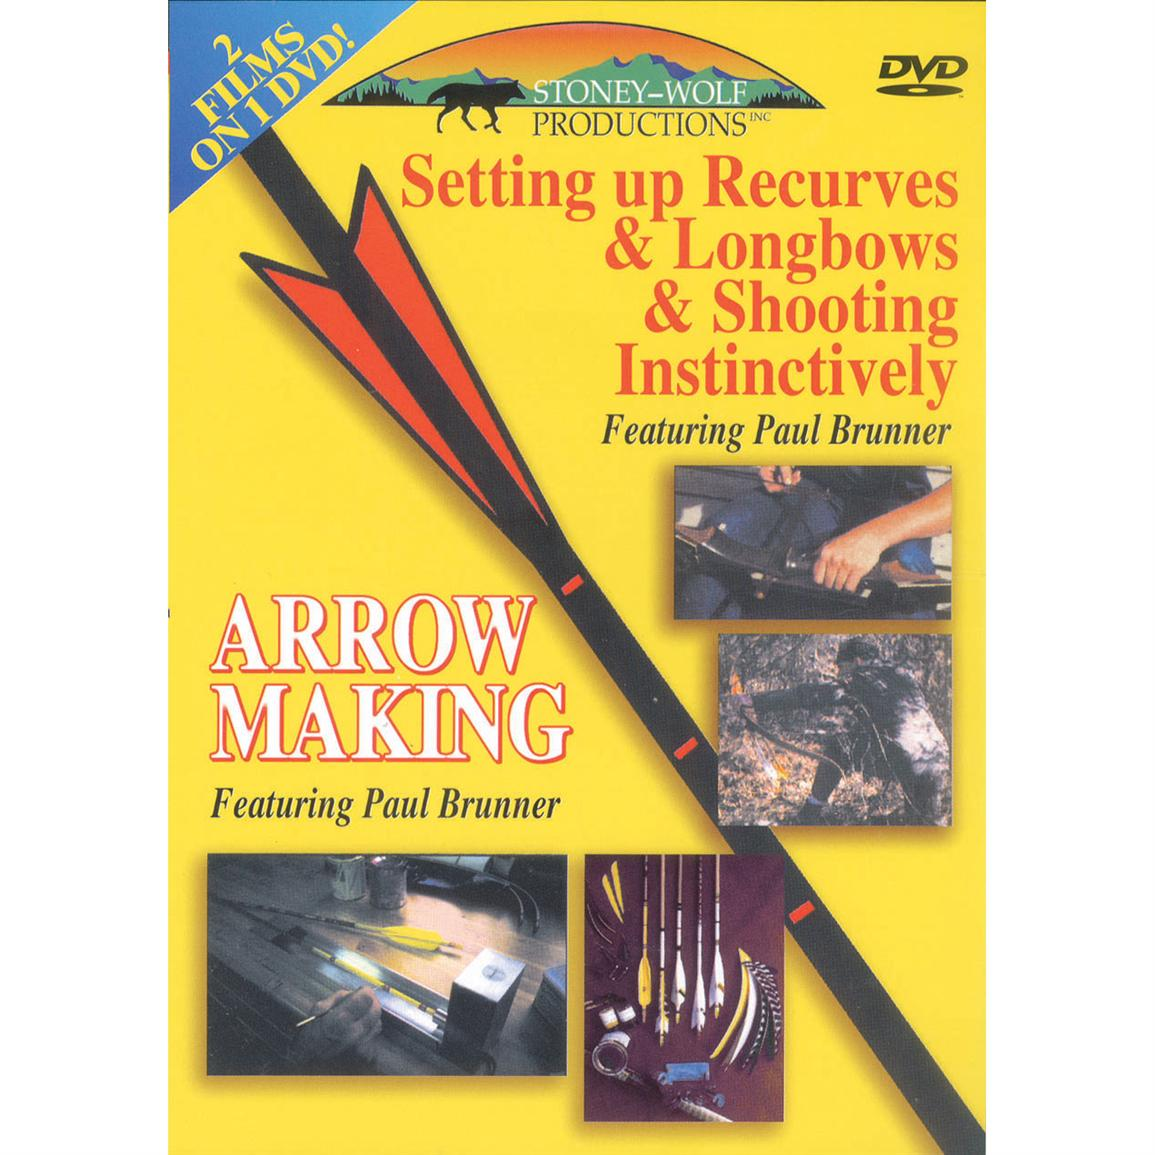 Arrow Making / Setting up Recurves & Longbows & Shooting Instinctively DVD